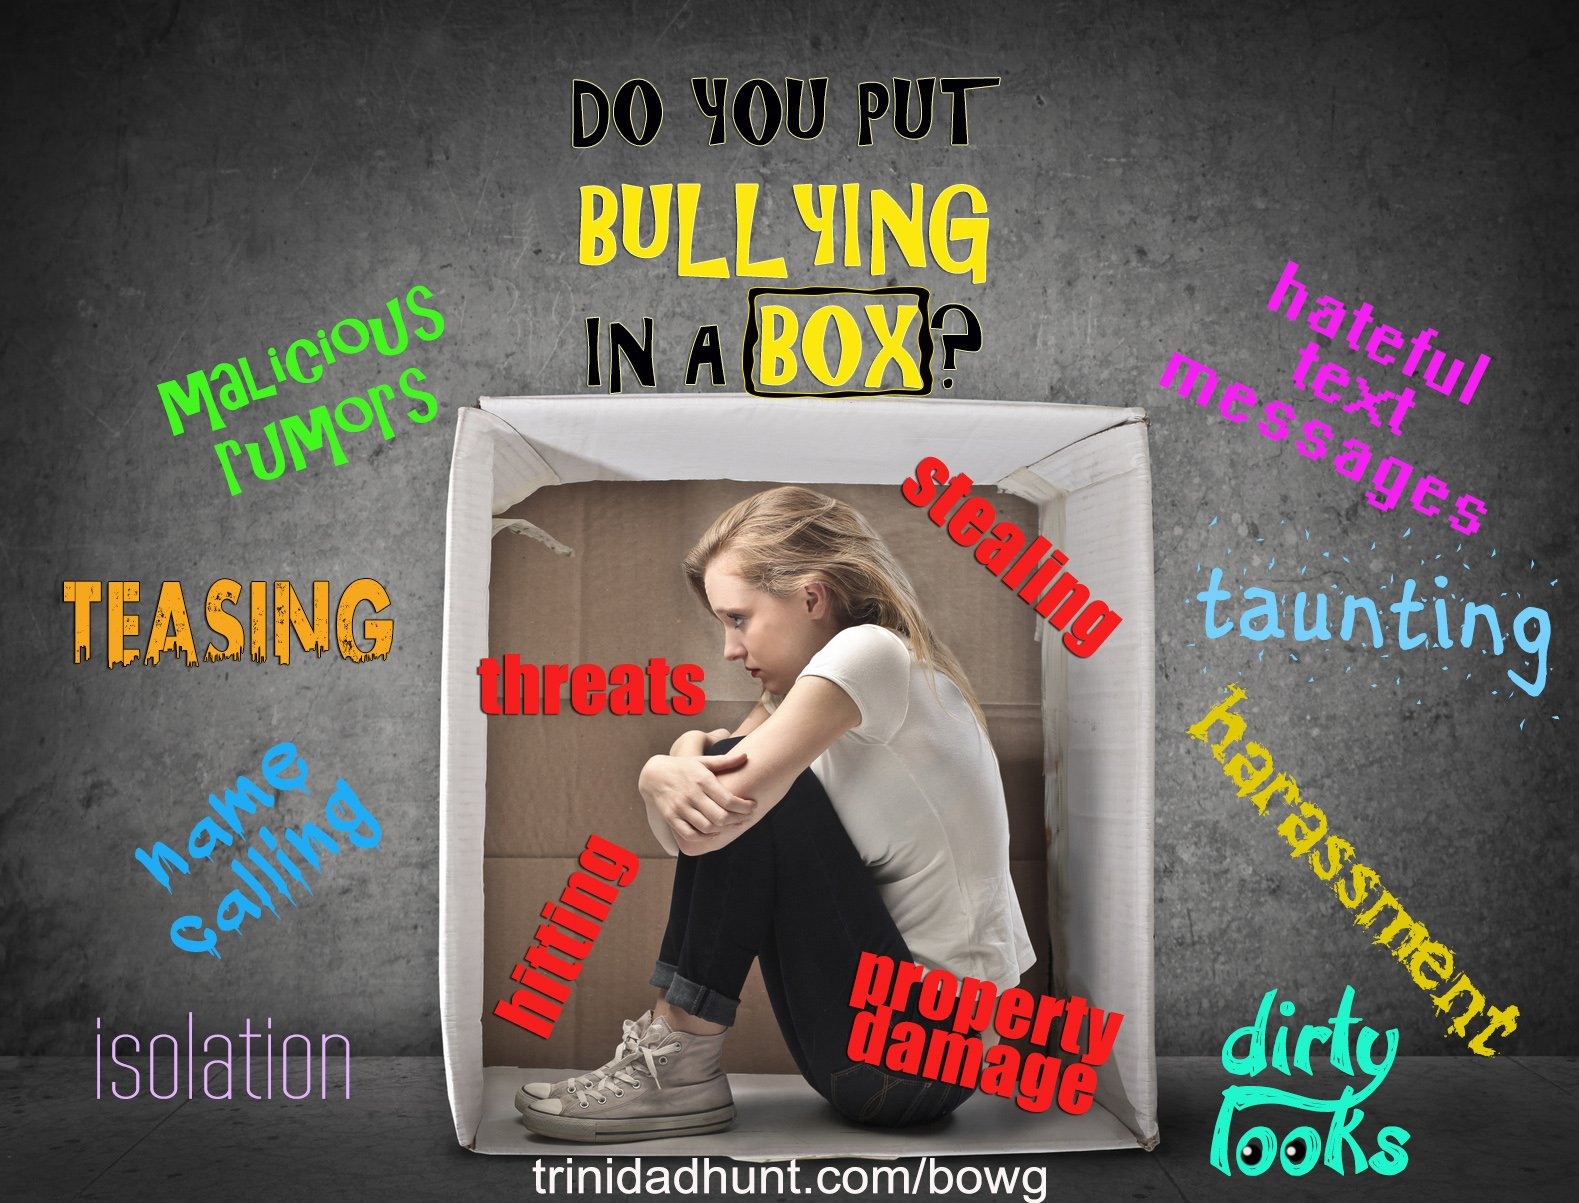 56 Interesting Facts about Bullying | FactRetriever.com